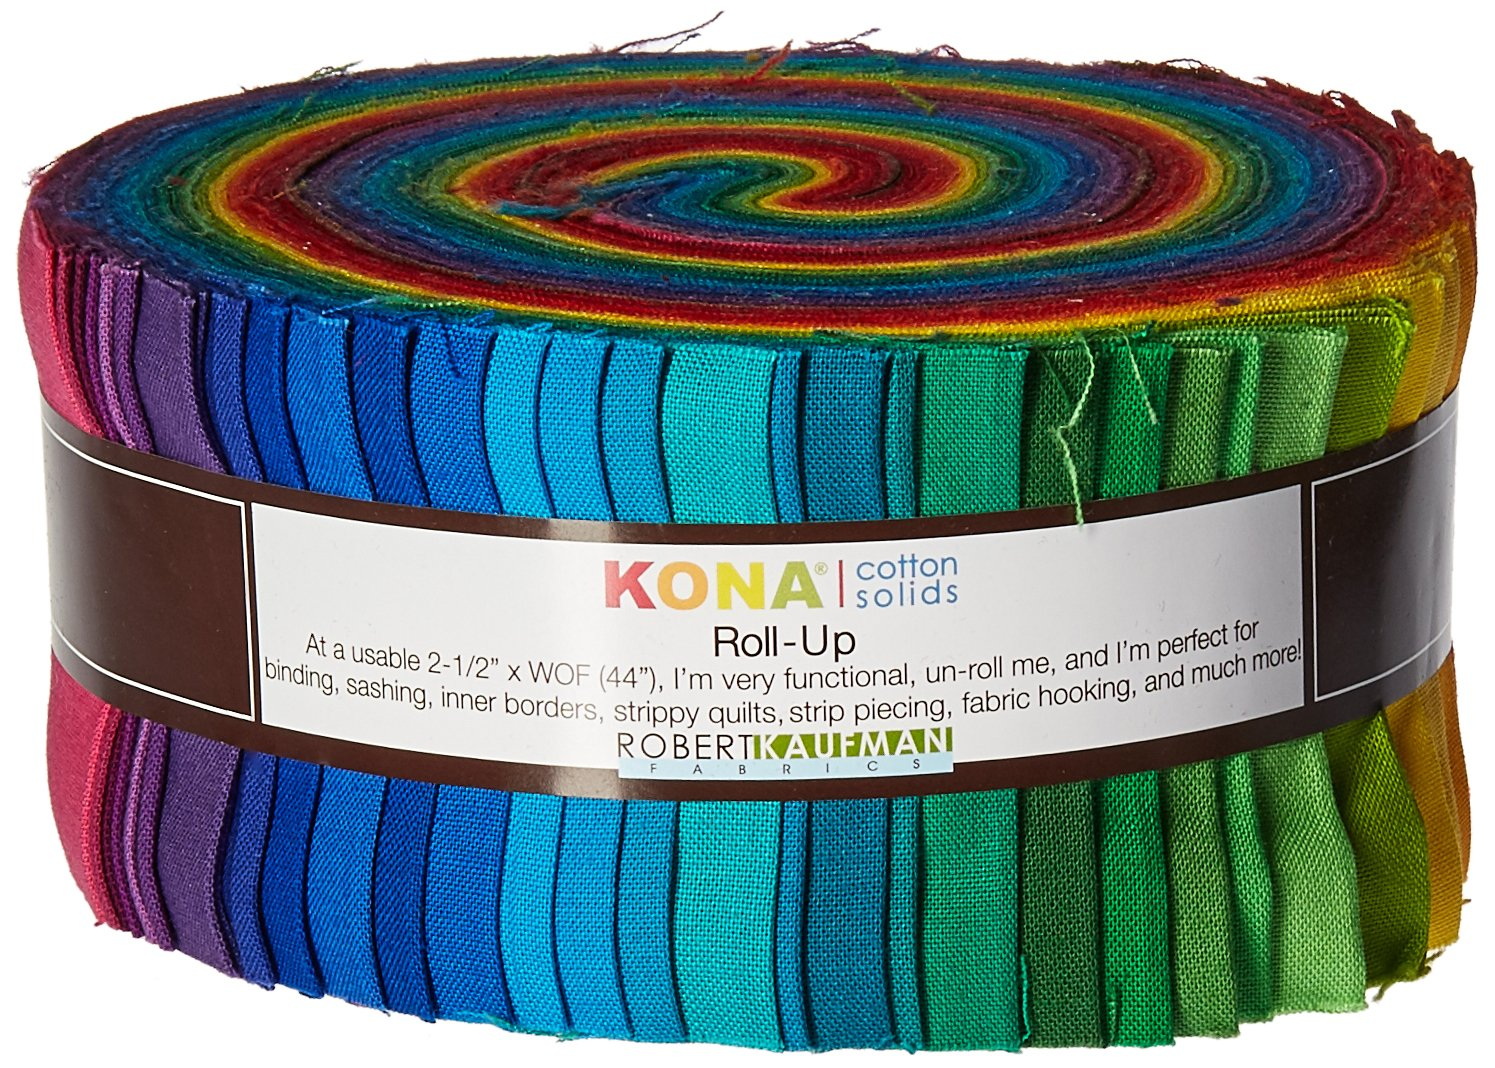 Robert Kaufman 2-1/2in Strips Roll Up Kona Cotton Solids Classic Palette 41Pcs RU-228-41